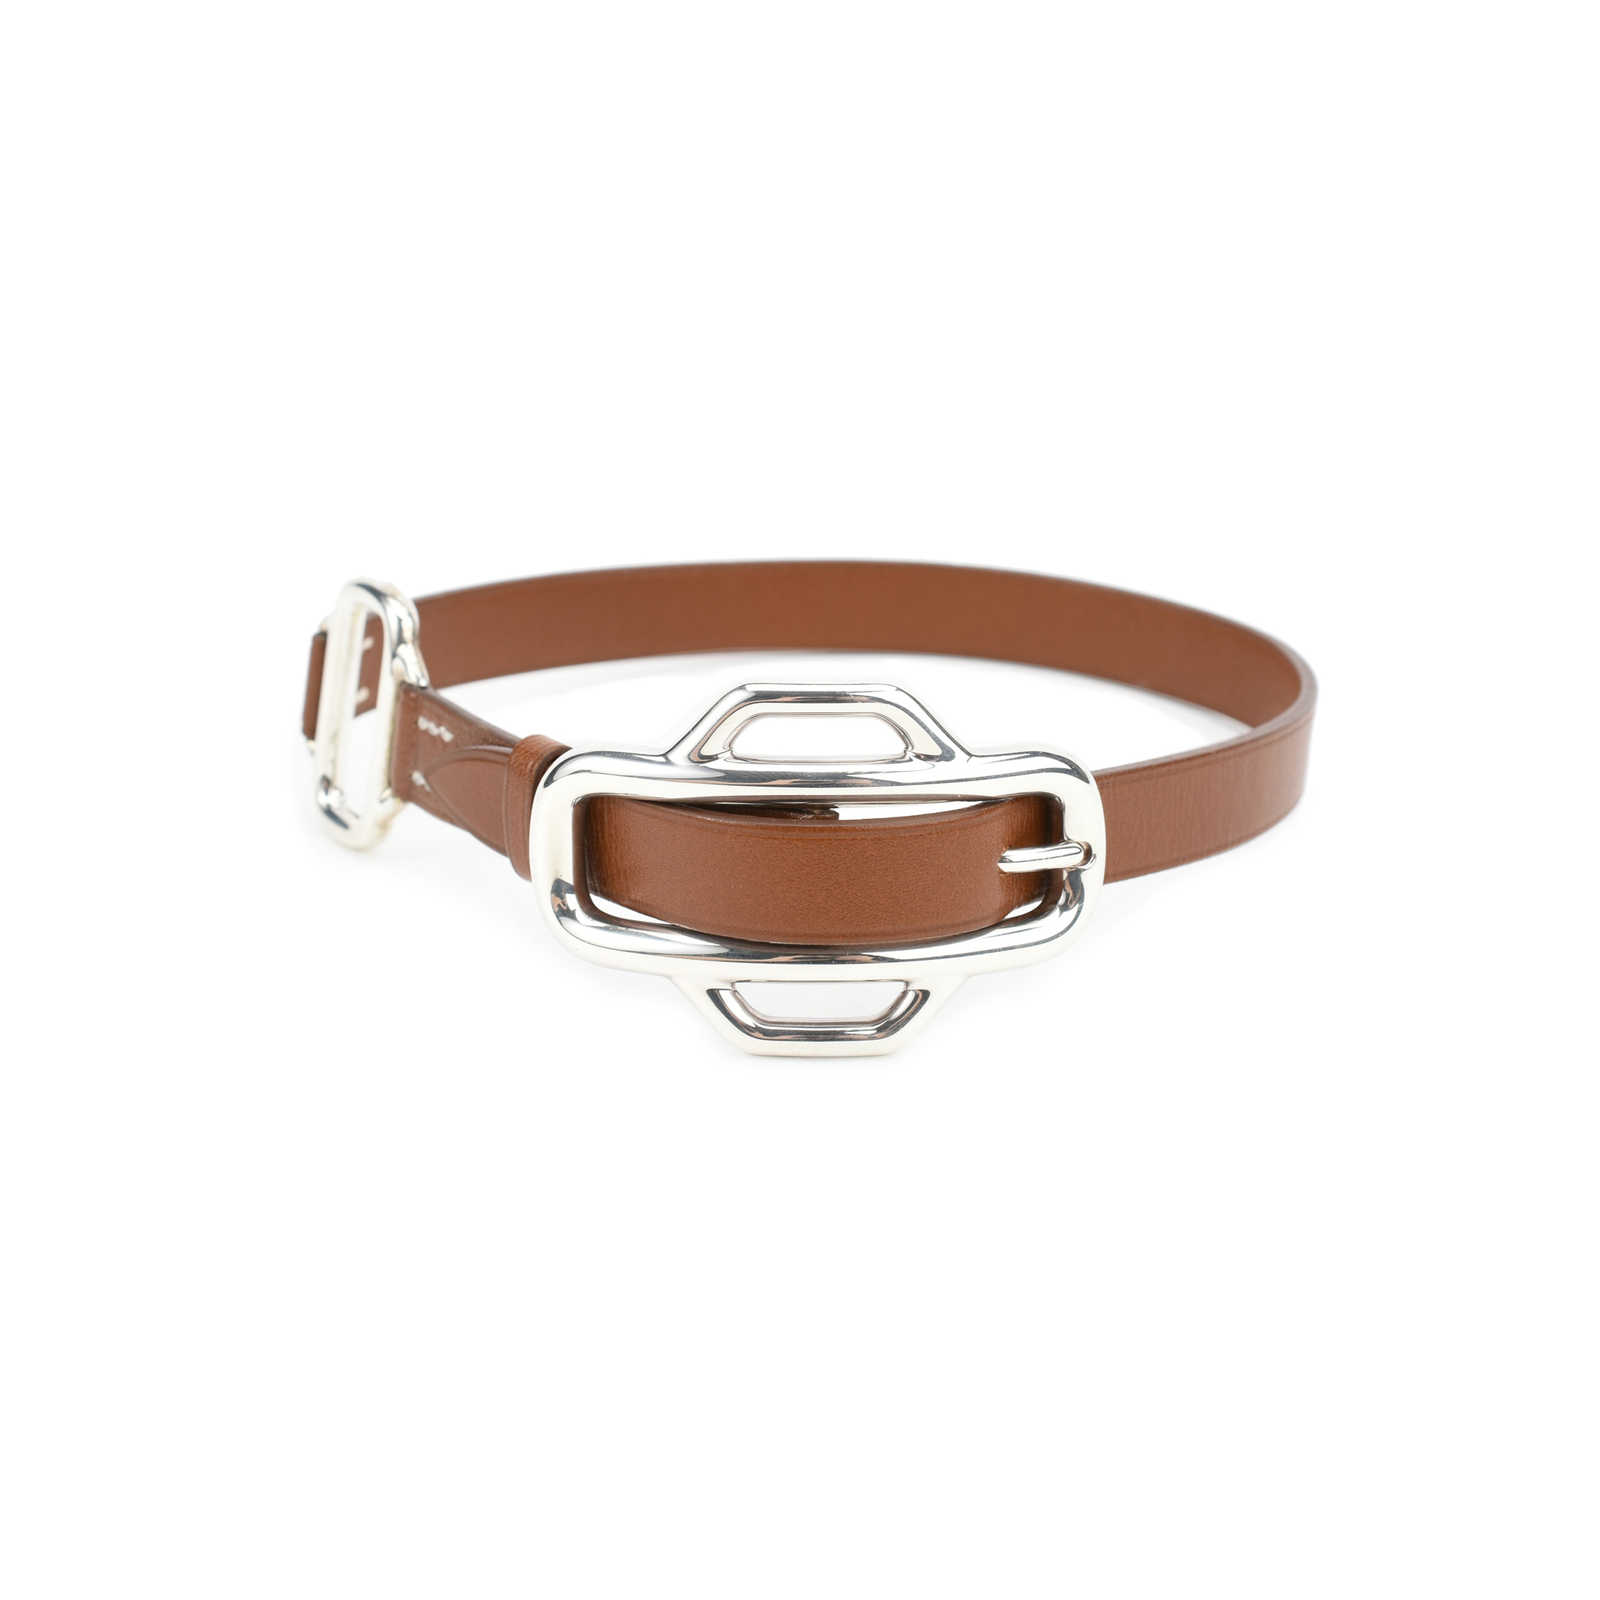 cafa6dbe83e7 ... Authentic Second Hand Hermès Attelage Bracelet (PSS-051-00263) -  Thumbnail 1 ...